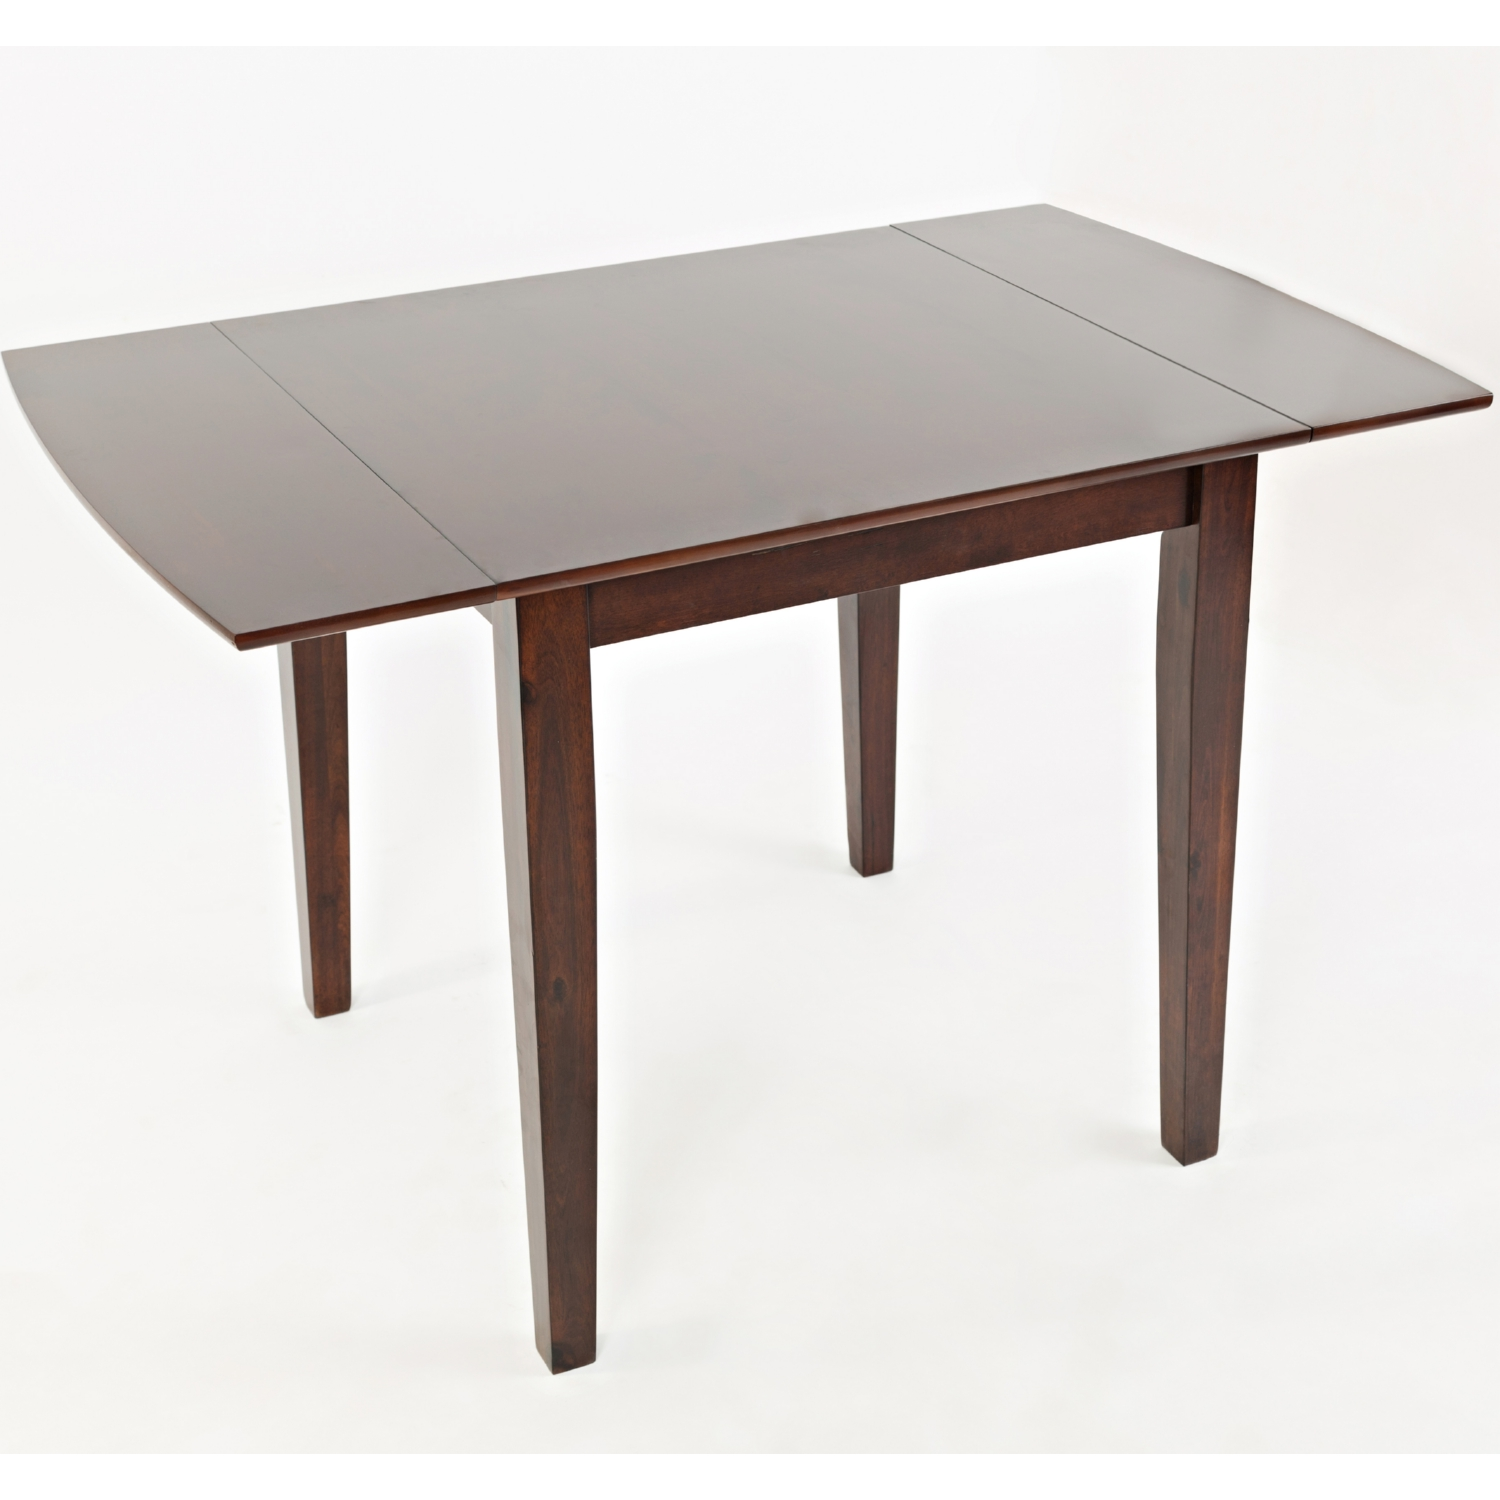 Jofran 1659 48 Everyday Classics Drop Leaf Dining Table in Cherry